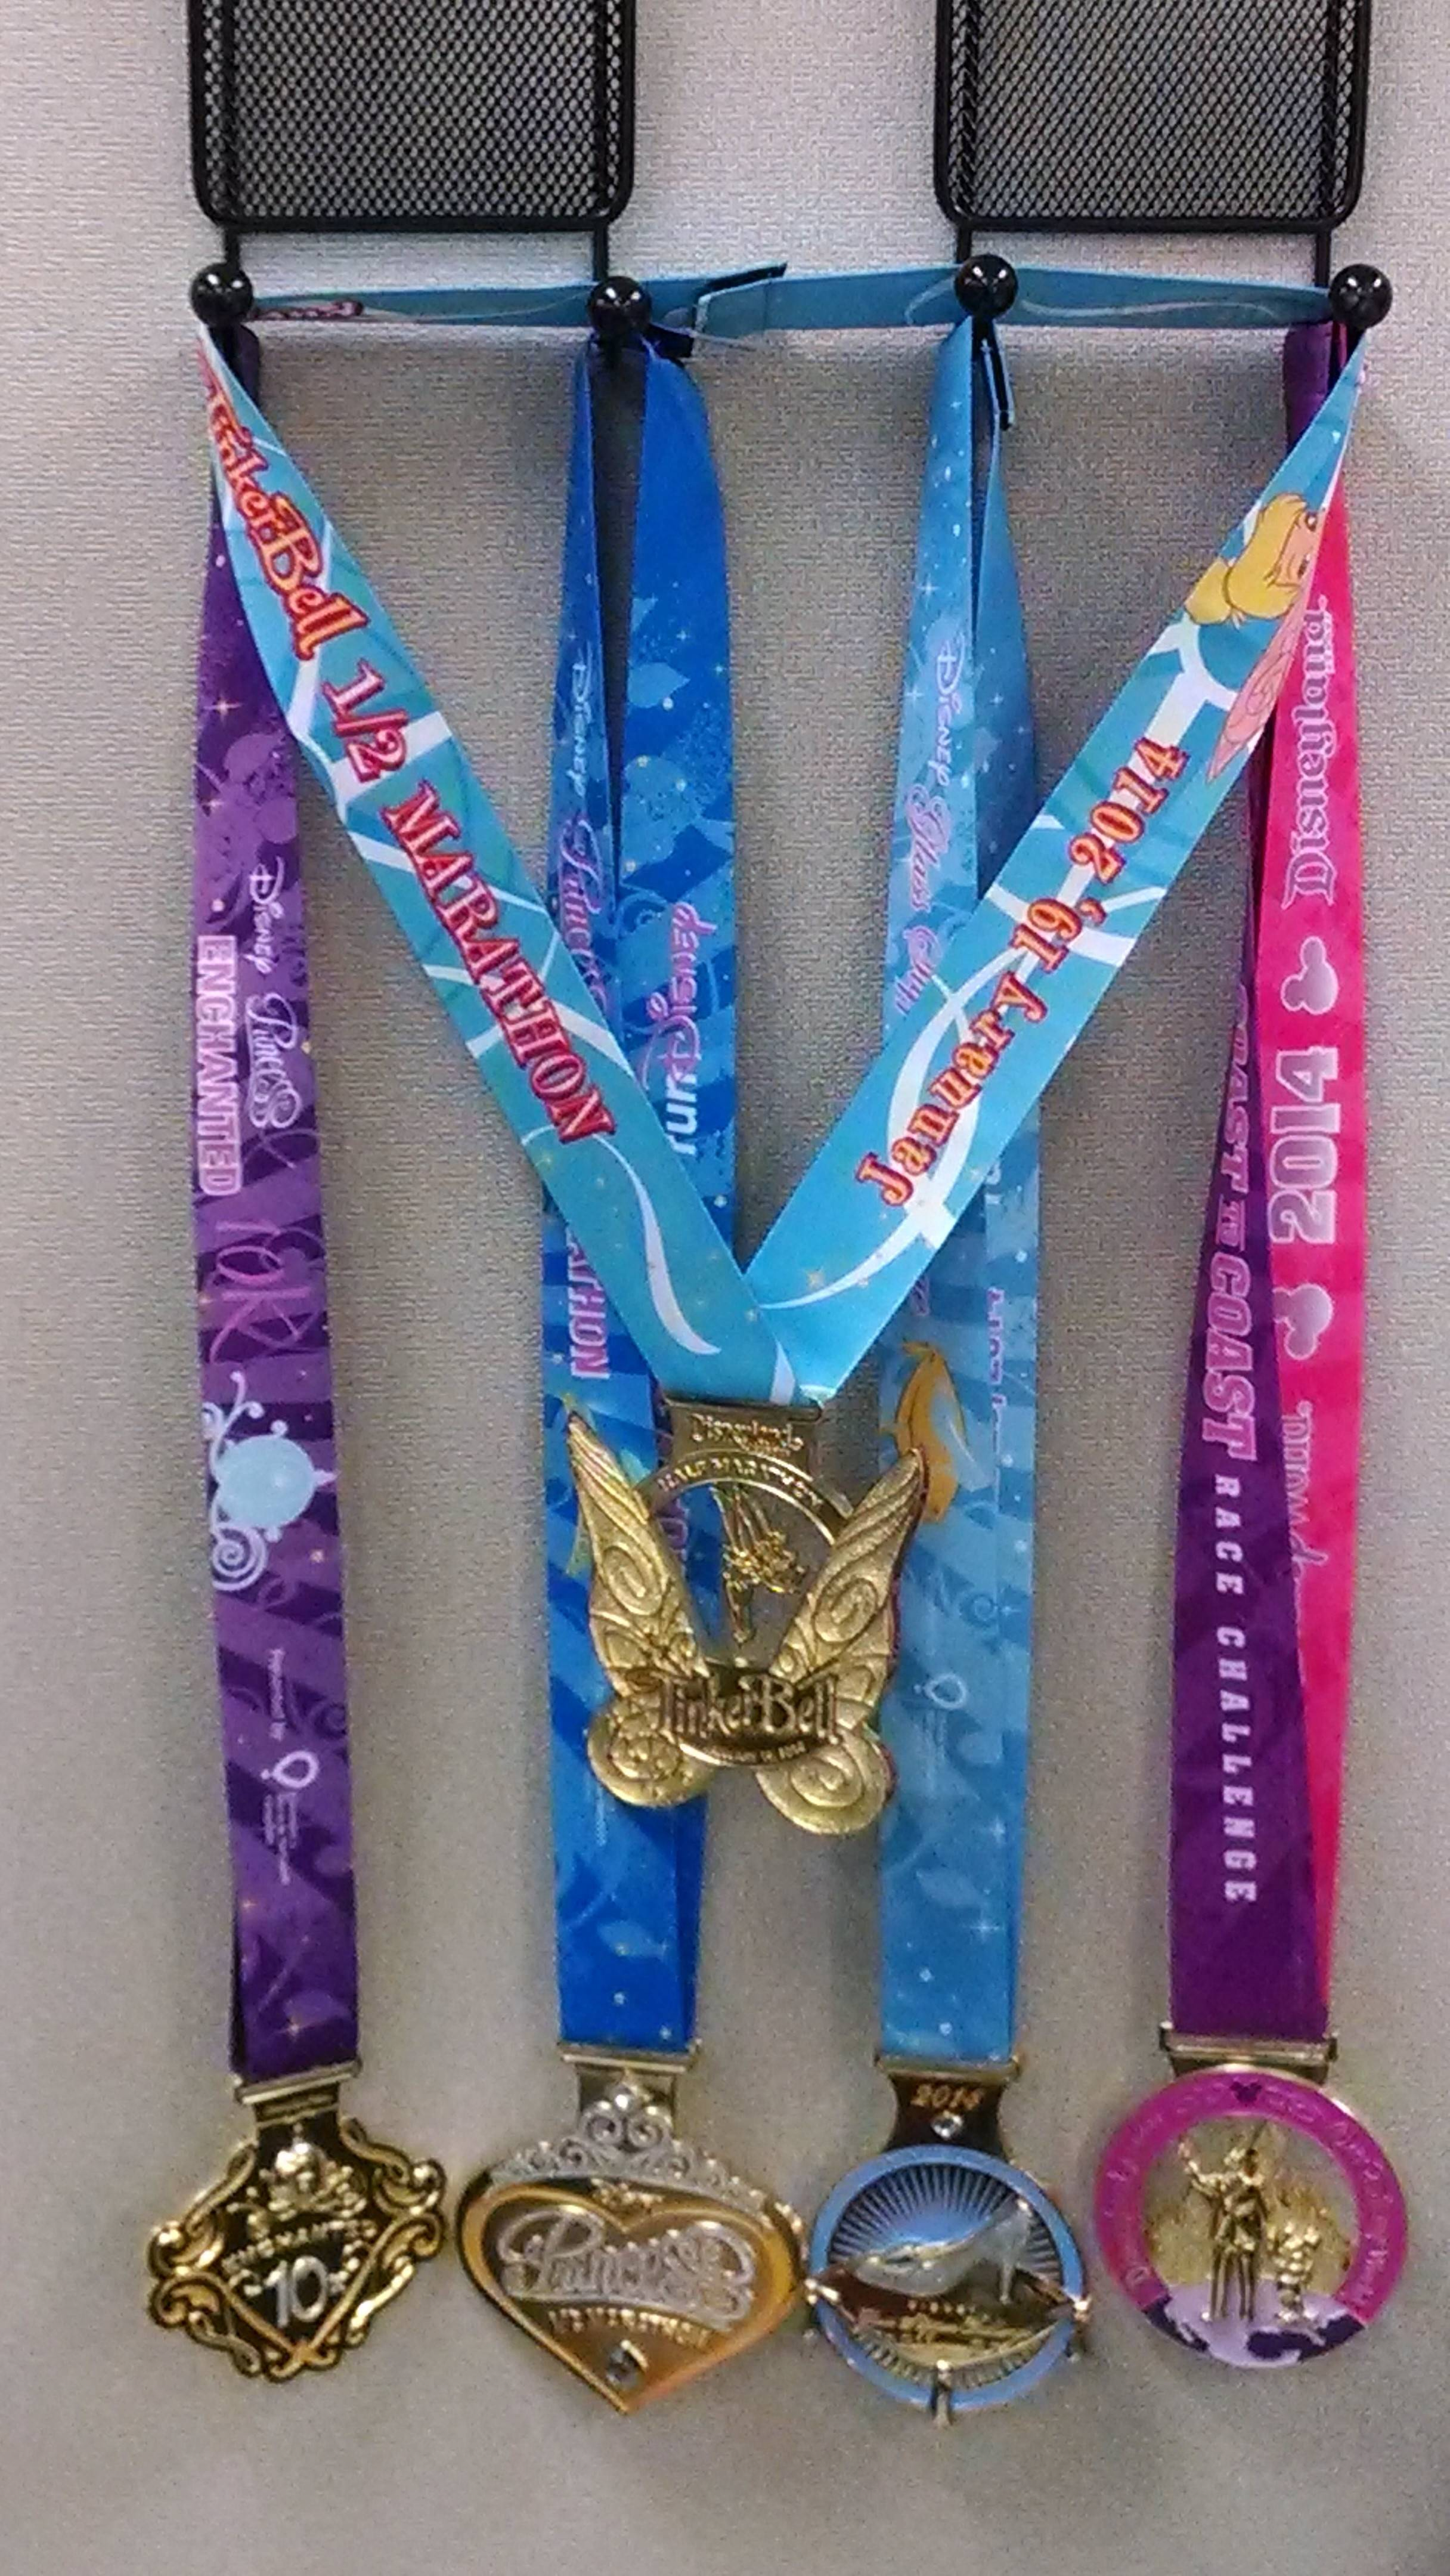 The Horvaths show off five of the elaborate race medals they've earned at runDisney races.